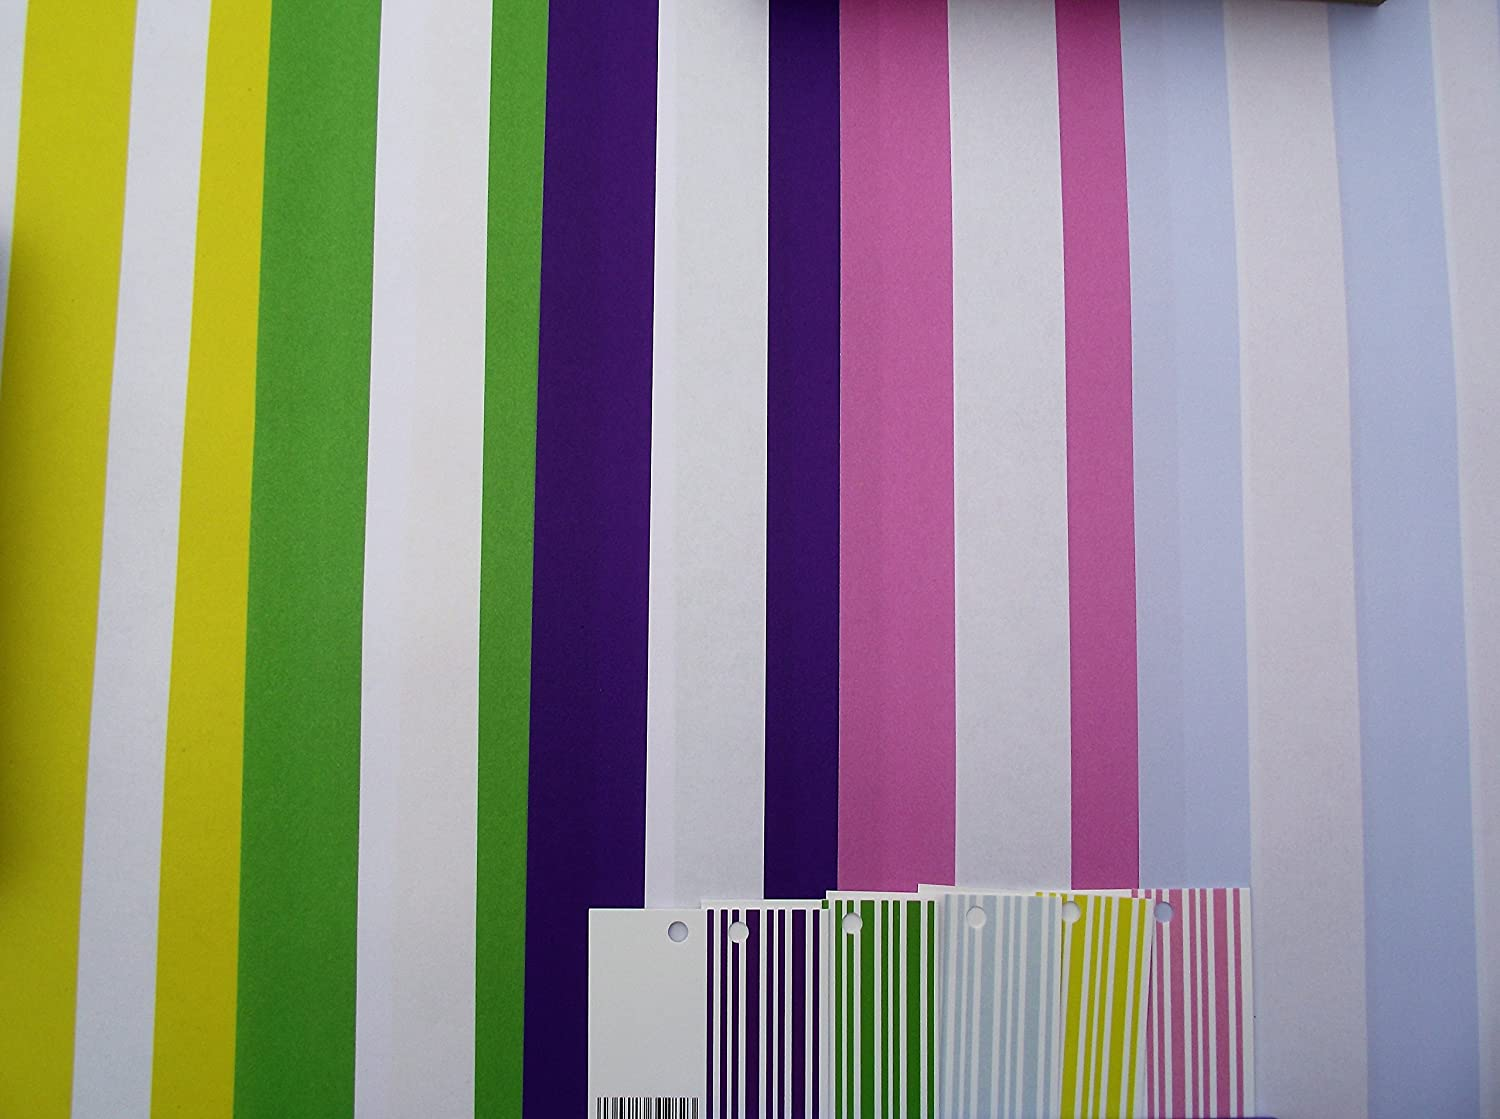 10 SHEETS OF STRIPES WRAPPING PAPER & 5 GIFT TAGS (2 sheets of 5 different colours) audsemporium ltd